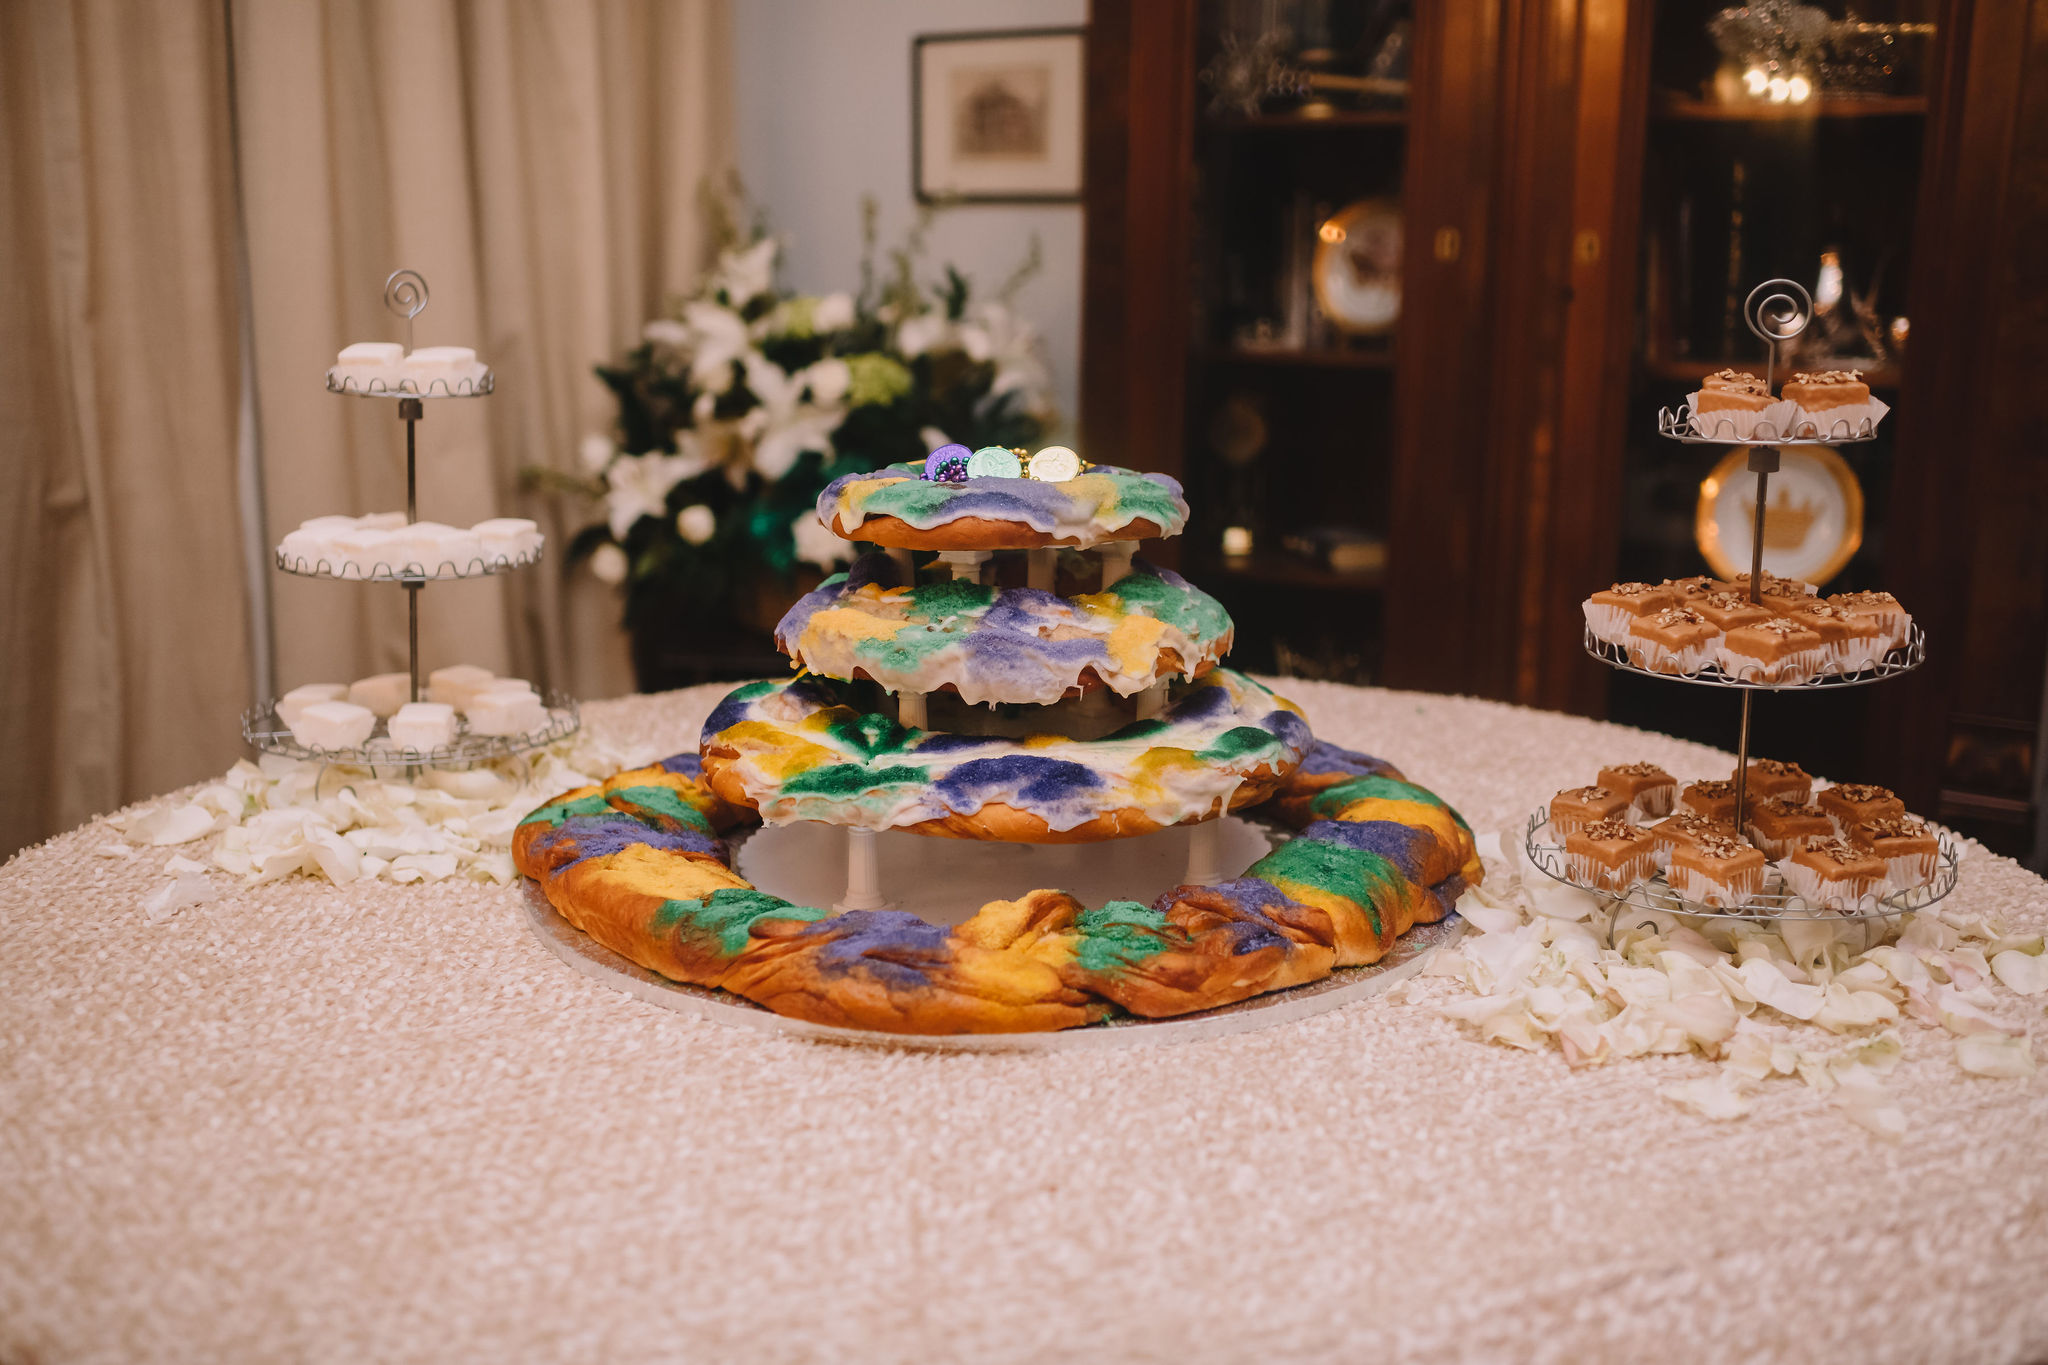 Instead of a traditional wedding cake, Rachel and Jimmy treated their guests to a four tier king cake and petit fours from Haydel's Bakery.